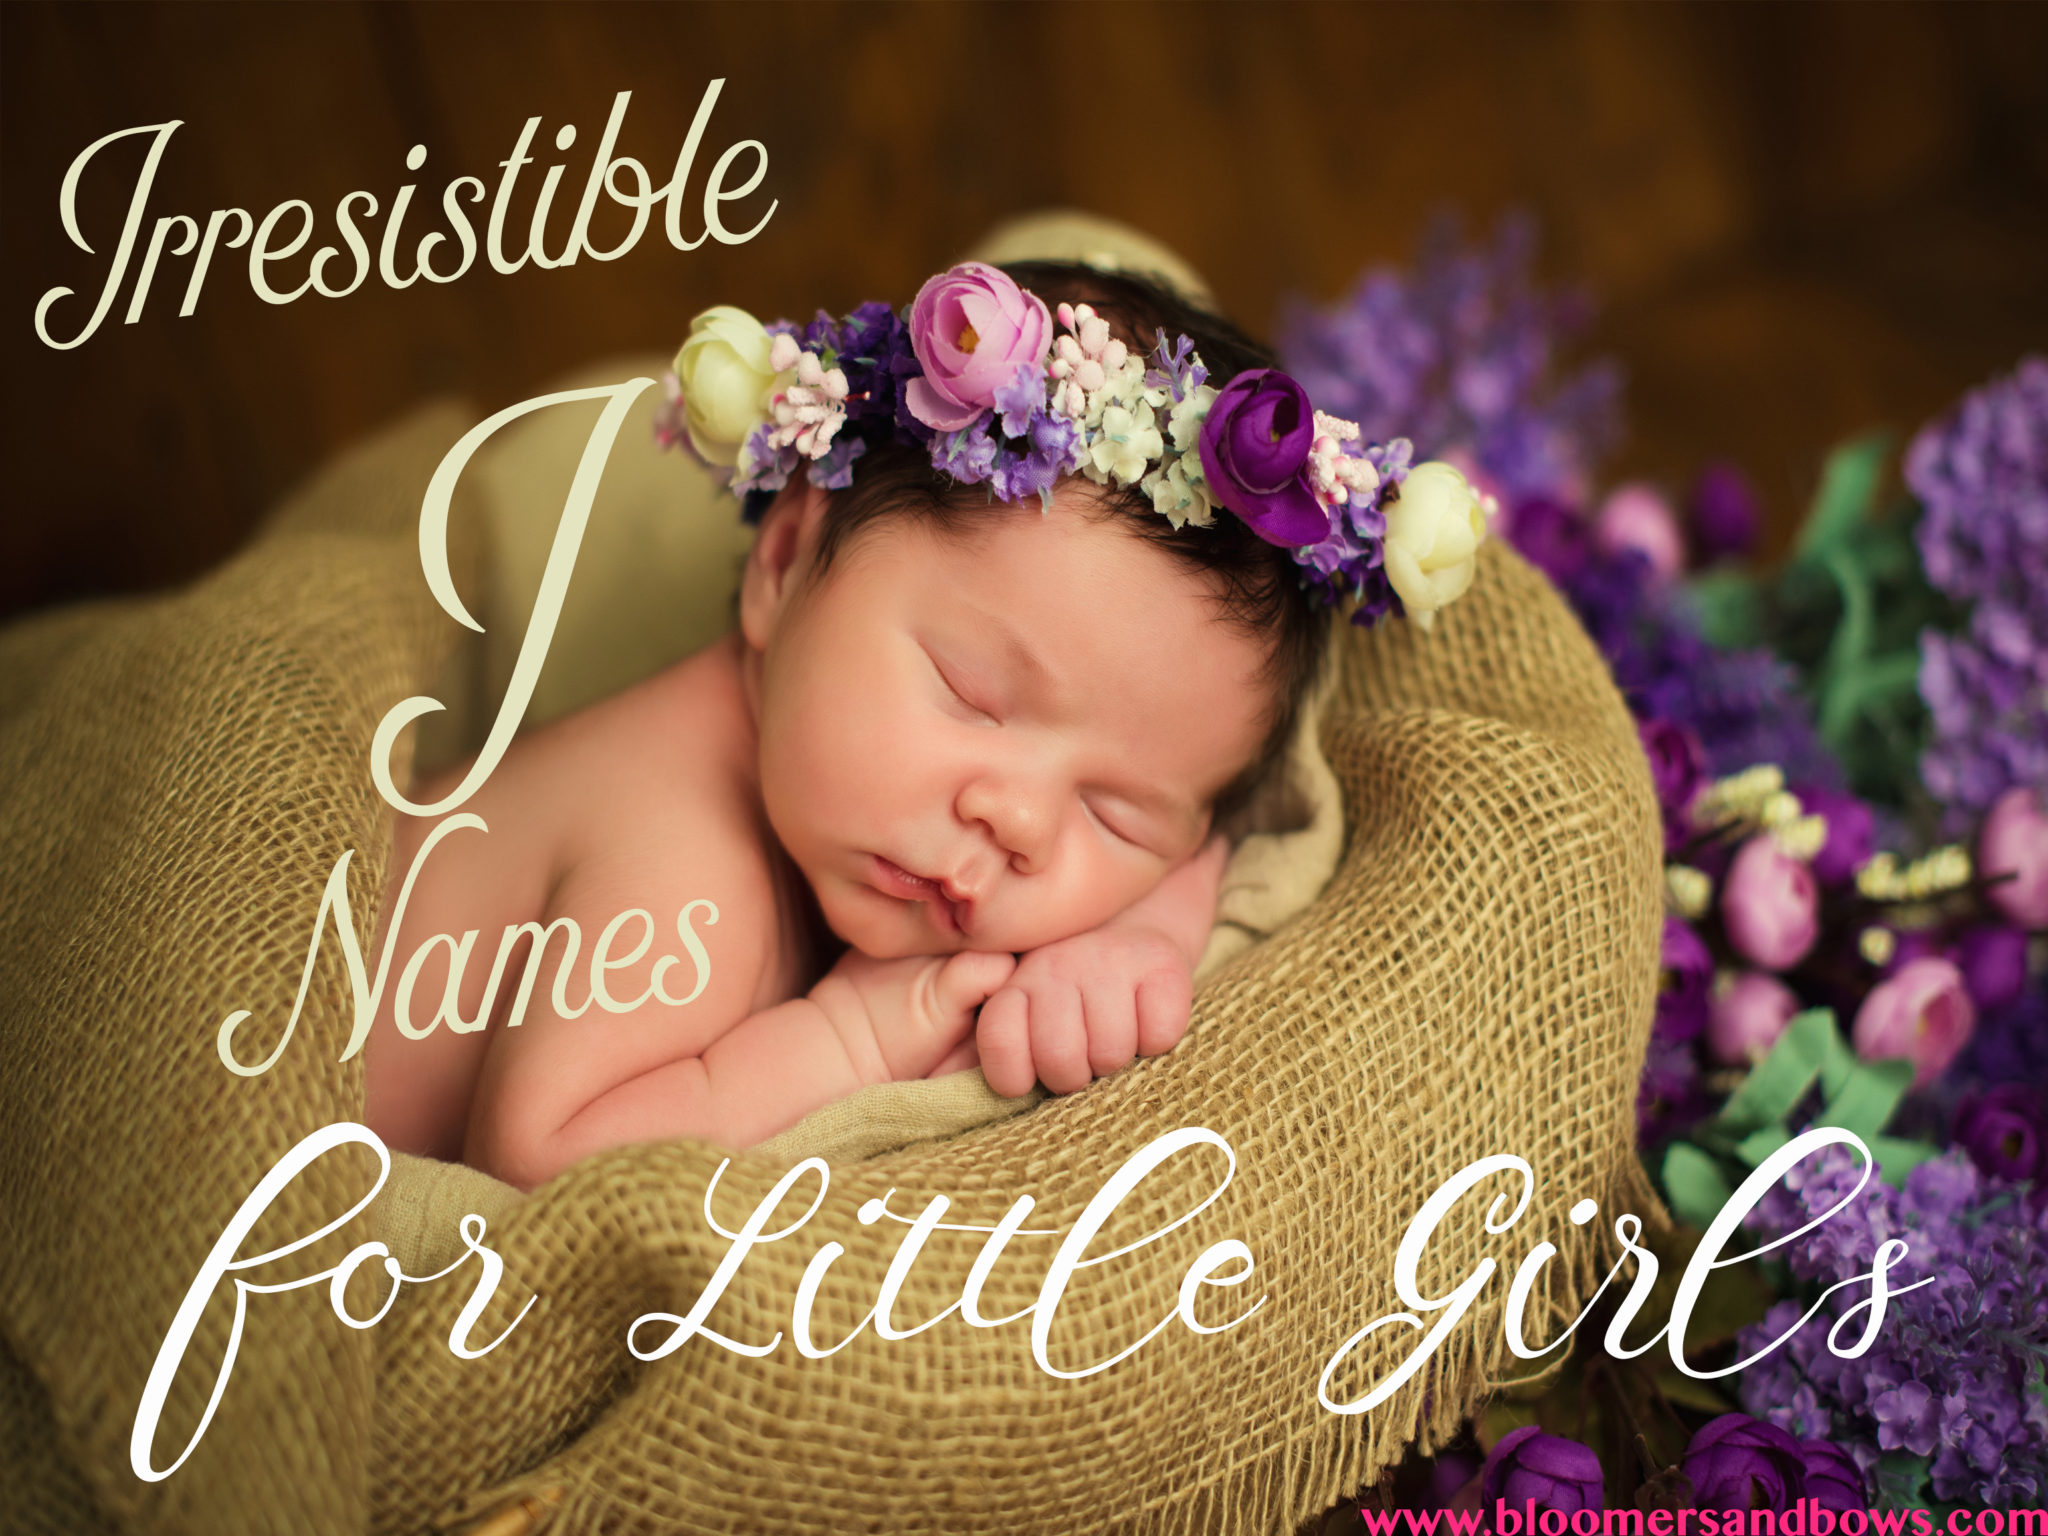 Girl Names that Start with I | Irresistible I Names for little girls. 1000+ beautiful names for little girls at Bloomers and bows.